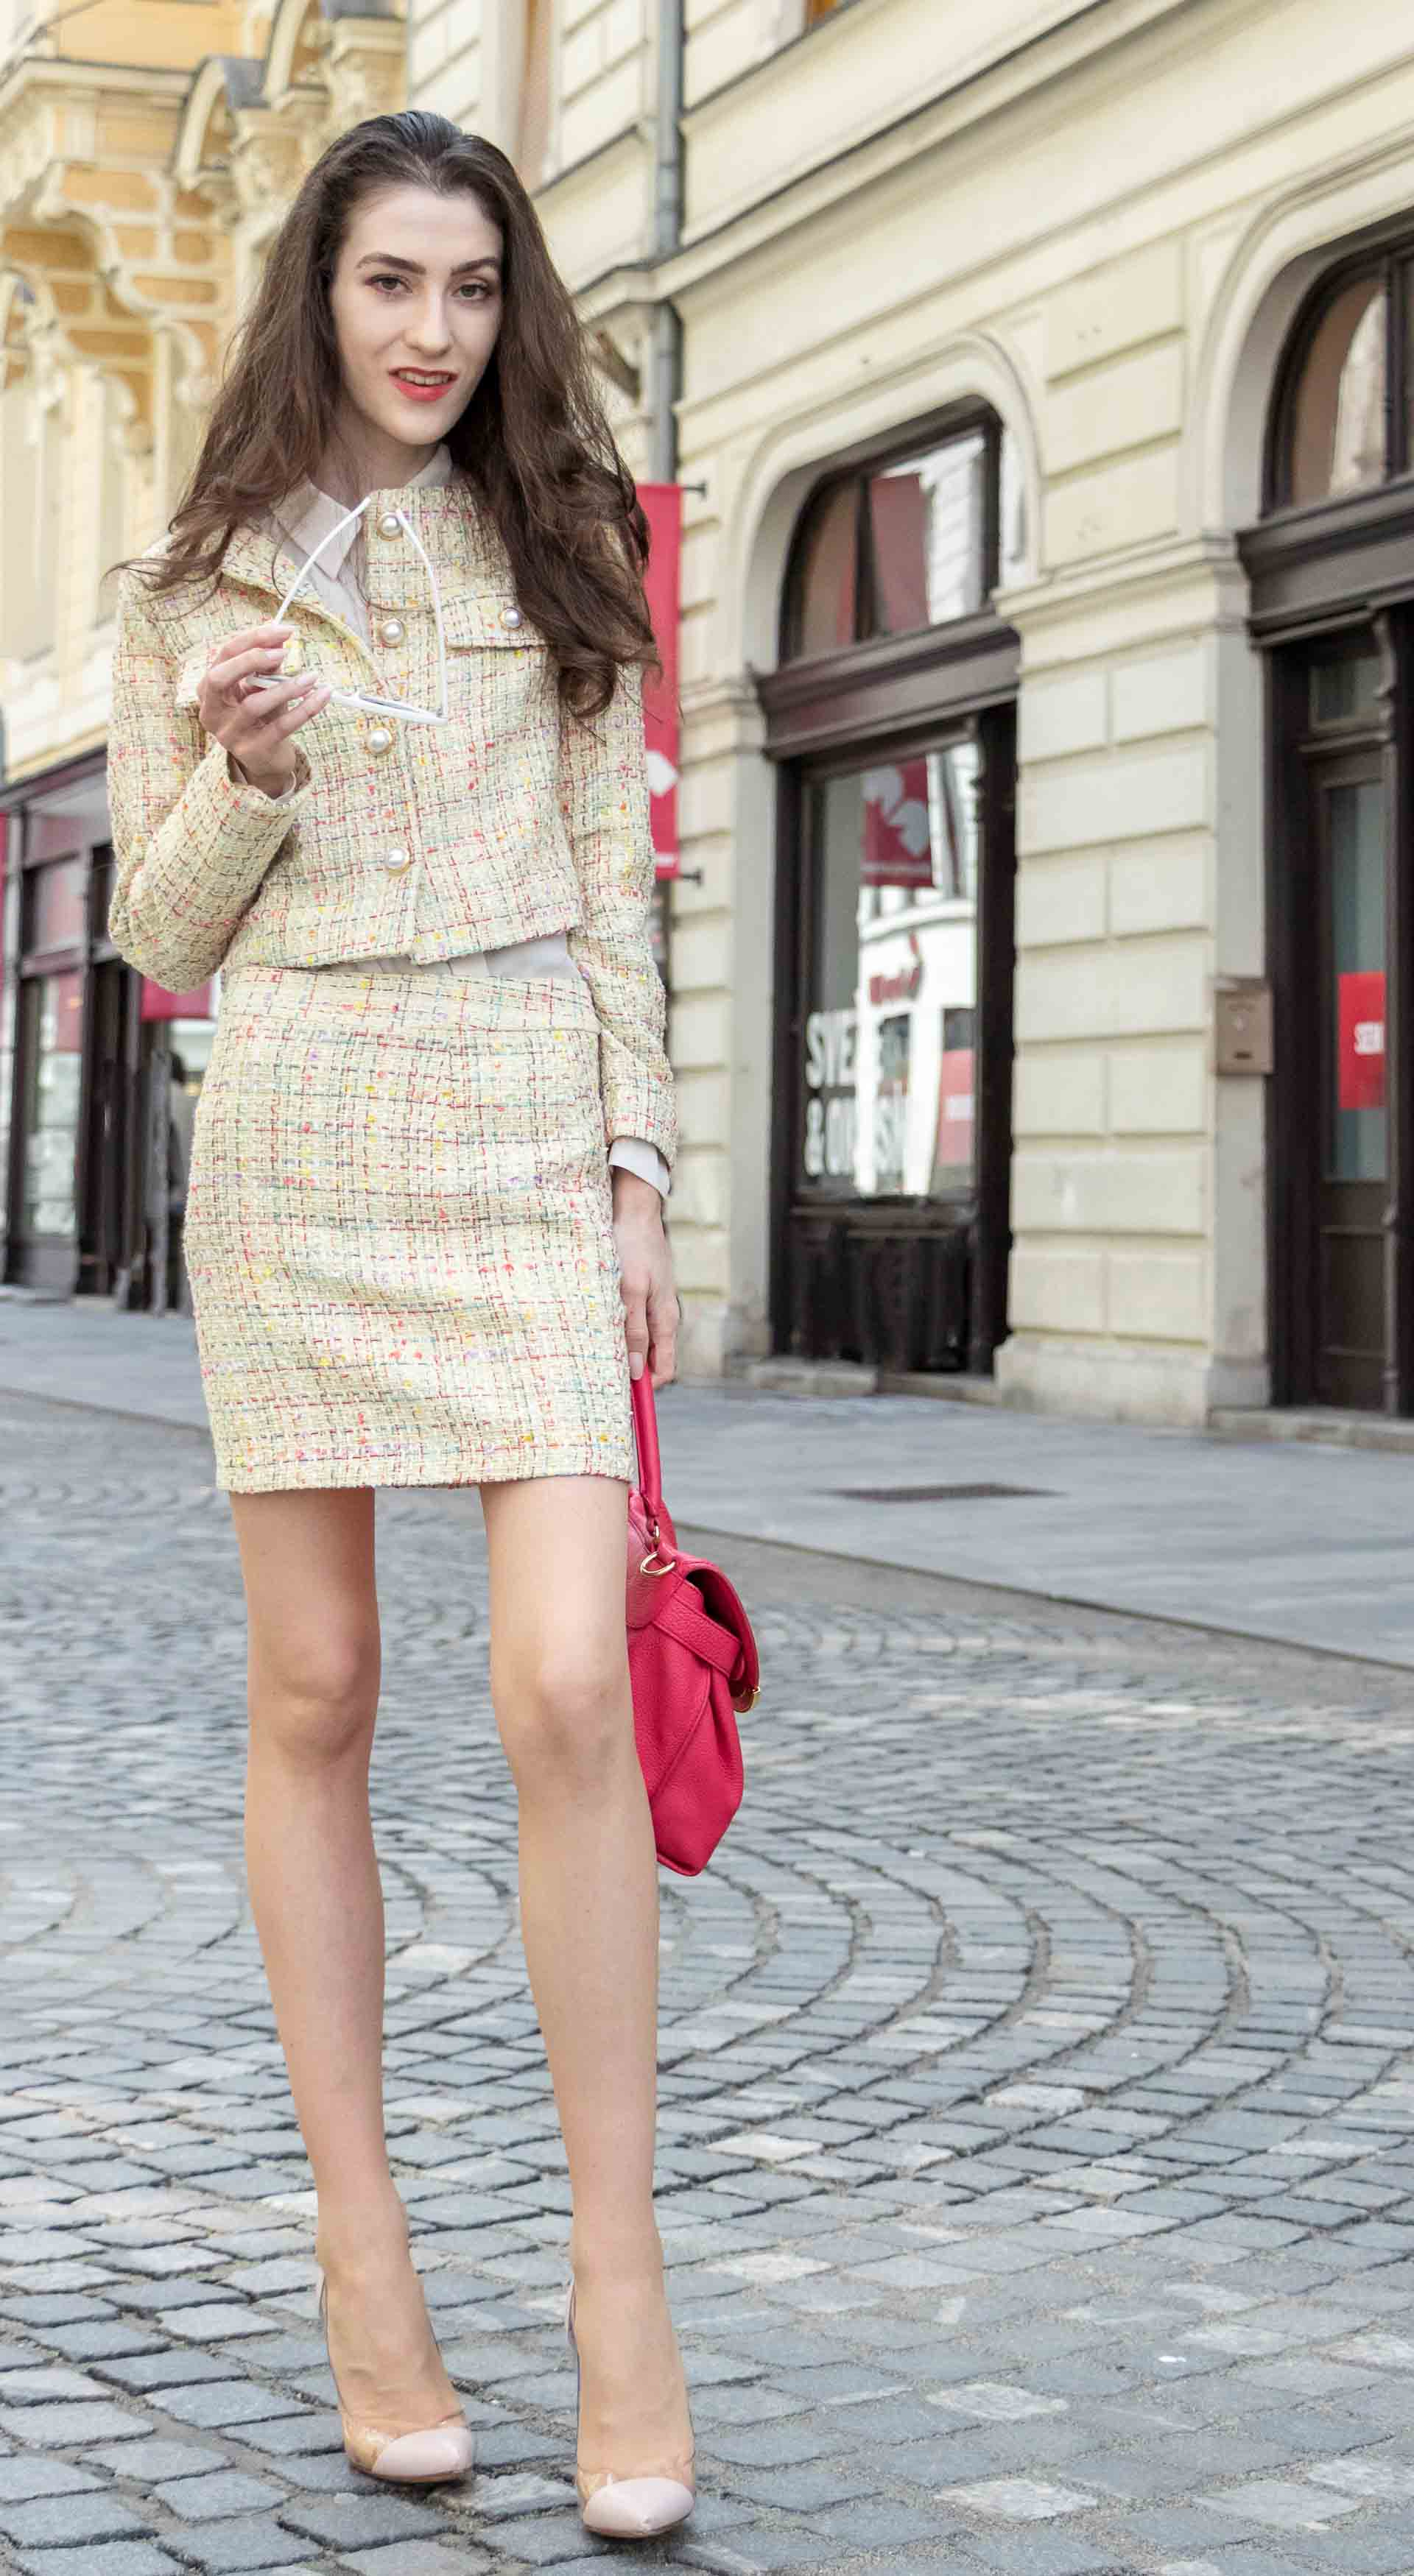 Fashion Blogger Veronika Lipar of Brunette from Wall Street wearing Storets yellow tweed mini skirt suit, Gianvito Rossi plexi pumps, See by Chloe pink top handle bag, Adam Selman x Lespecs white Lolita sunglasses for doctor's appointment